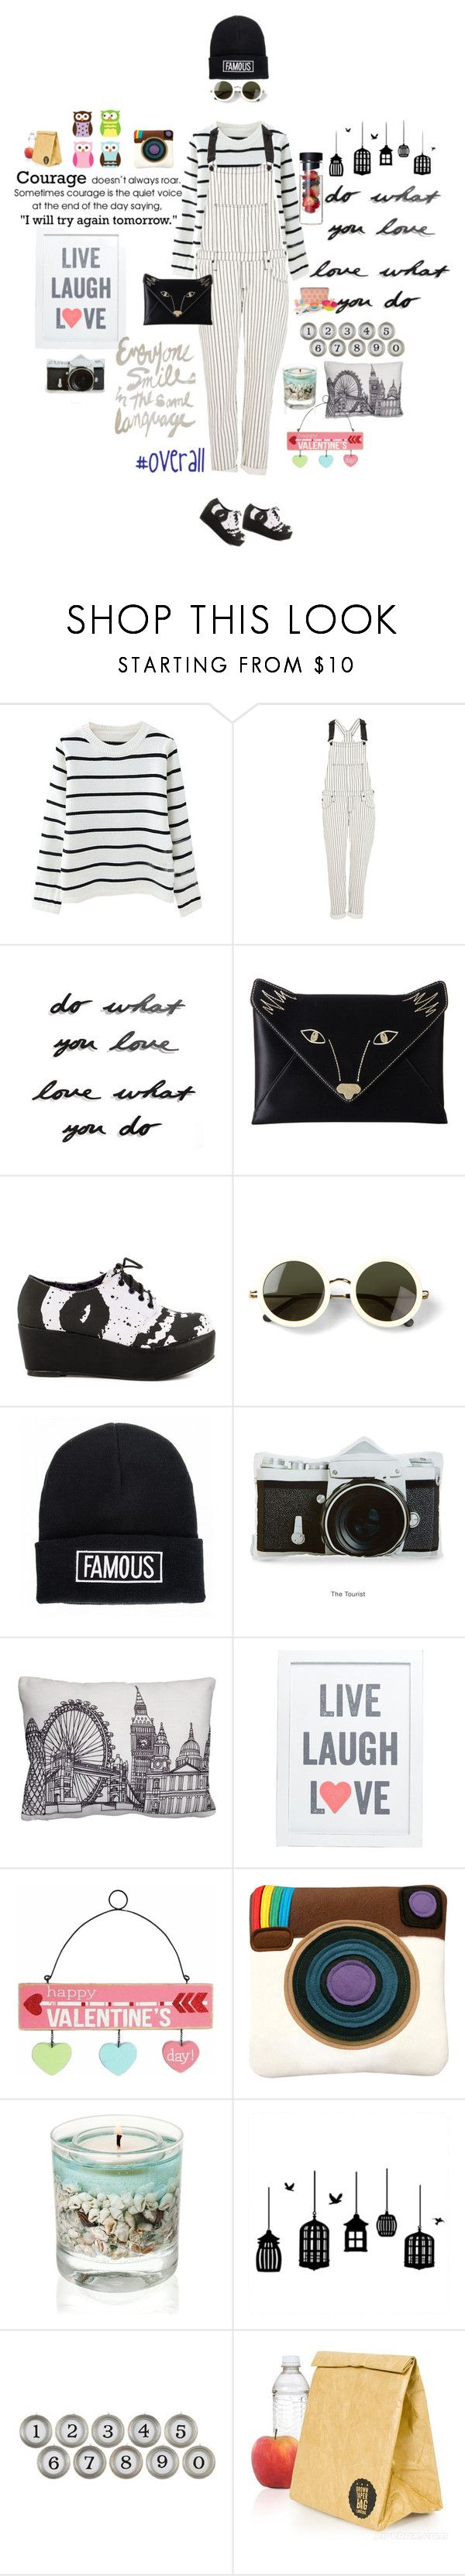 """""""tricky trend: look chic in overalls"""" by girl-with-ideas ❤ liked on Polyvore featuring River Island, Umbra, BCBGMAXAZRIA, Iron Fist, The Row, Quiz, WALL, Puji, Aidan Gray and ZAK"""